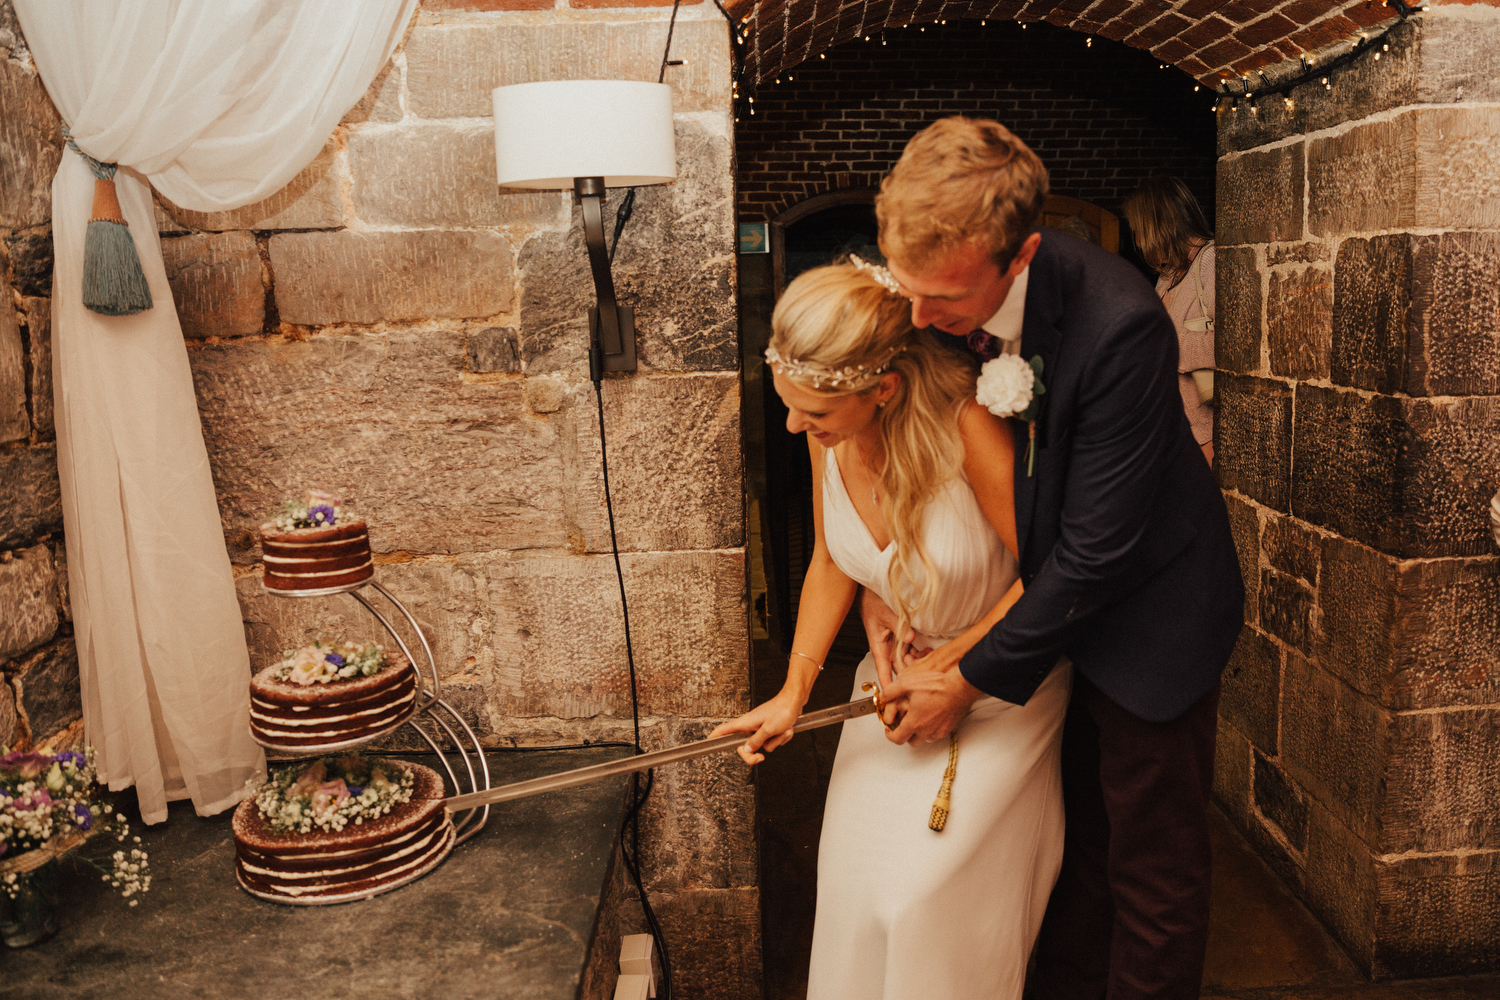 Evening wedding reception at Polhawn Fort in Cornwall